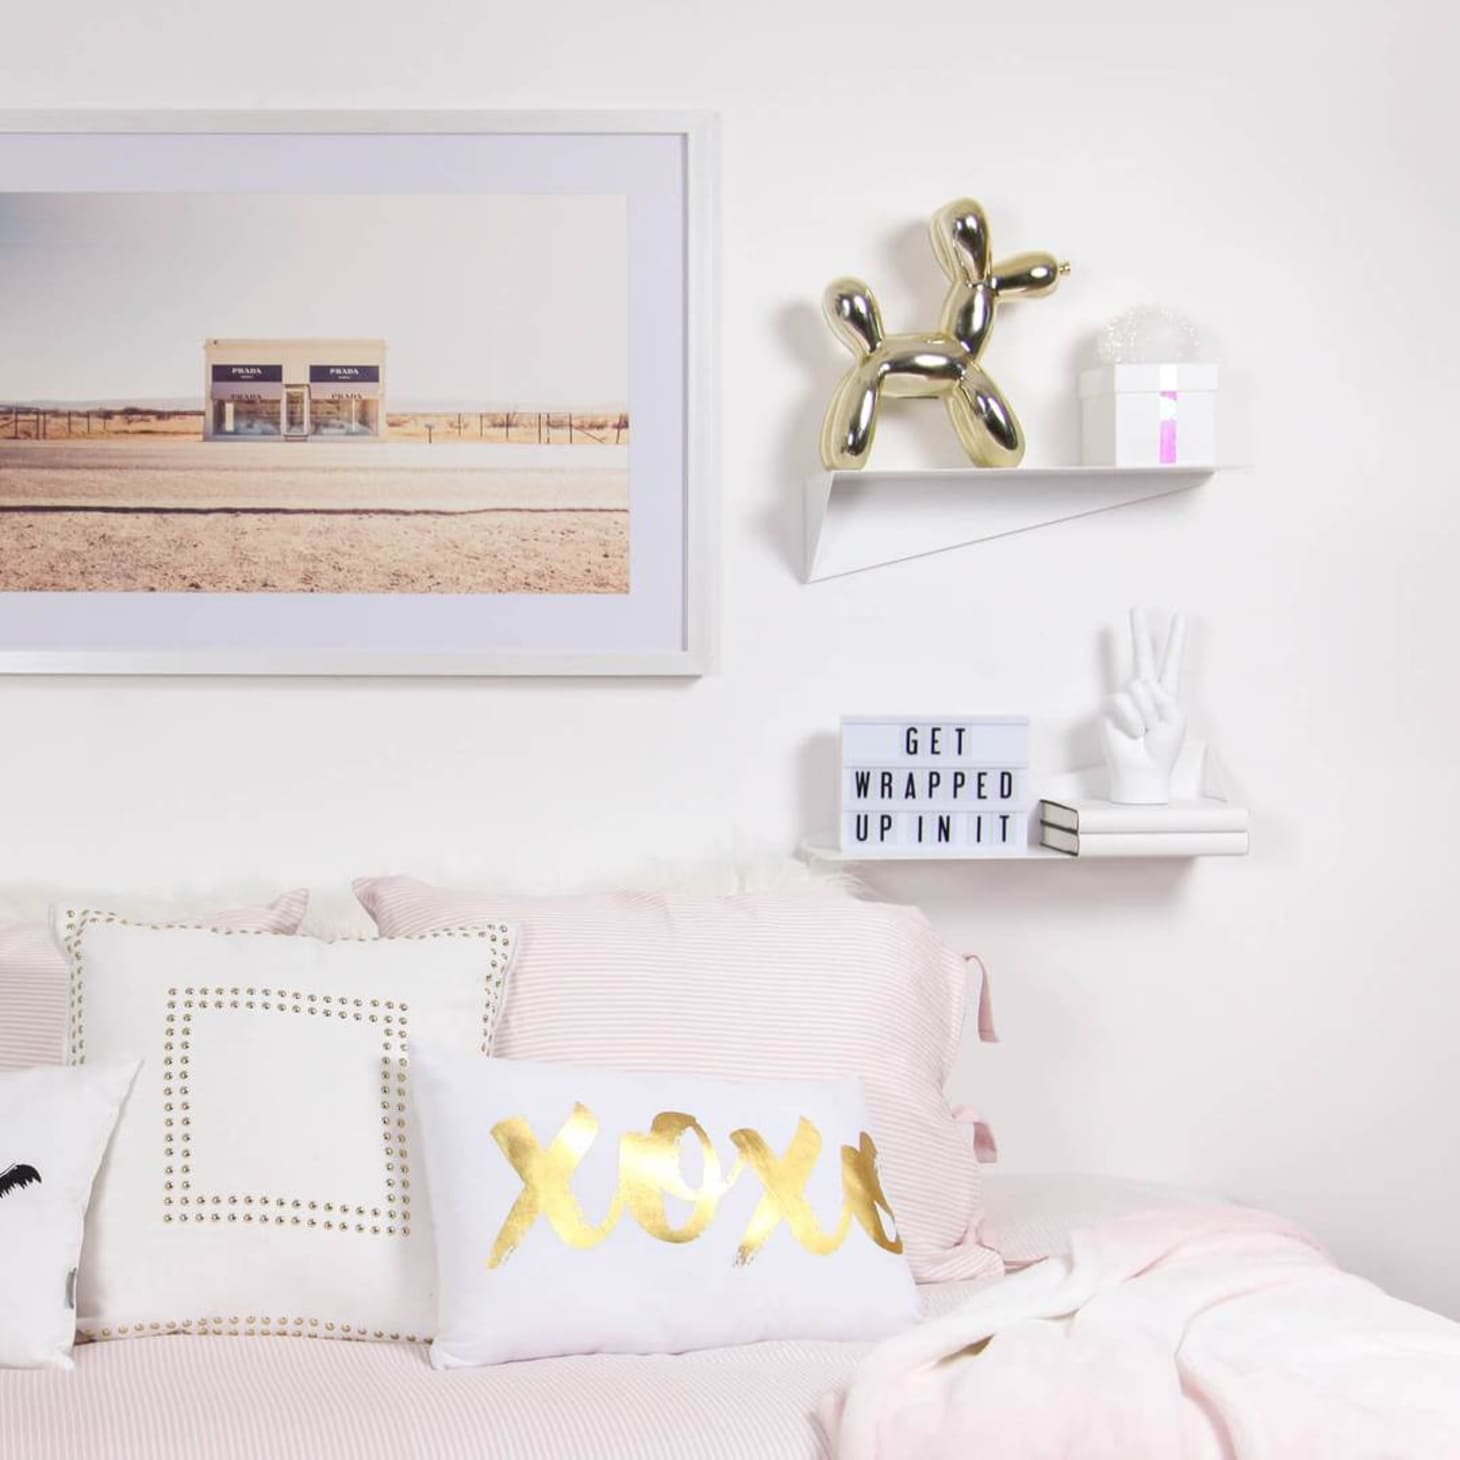 The Home Decor You Should Always Buy On The Cheap